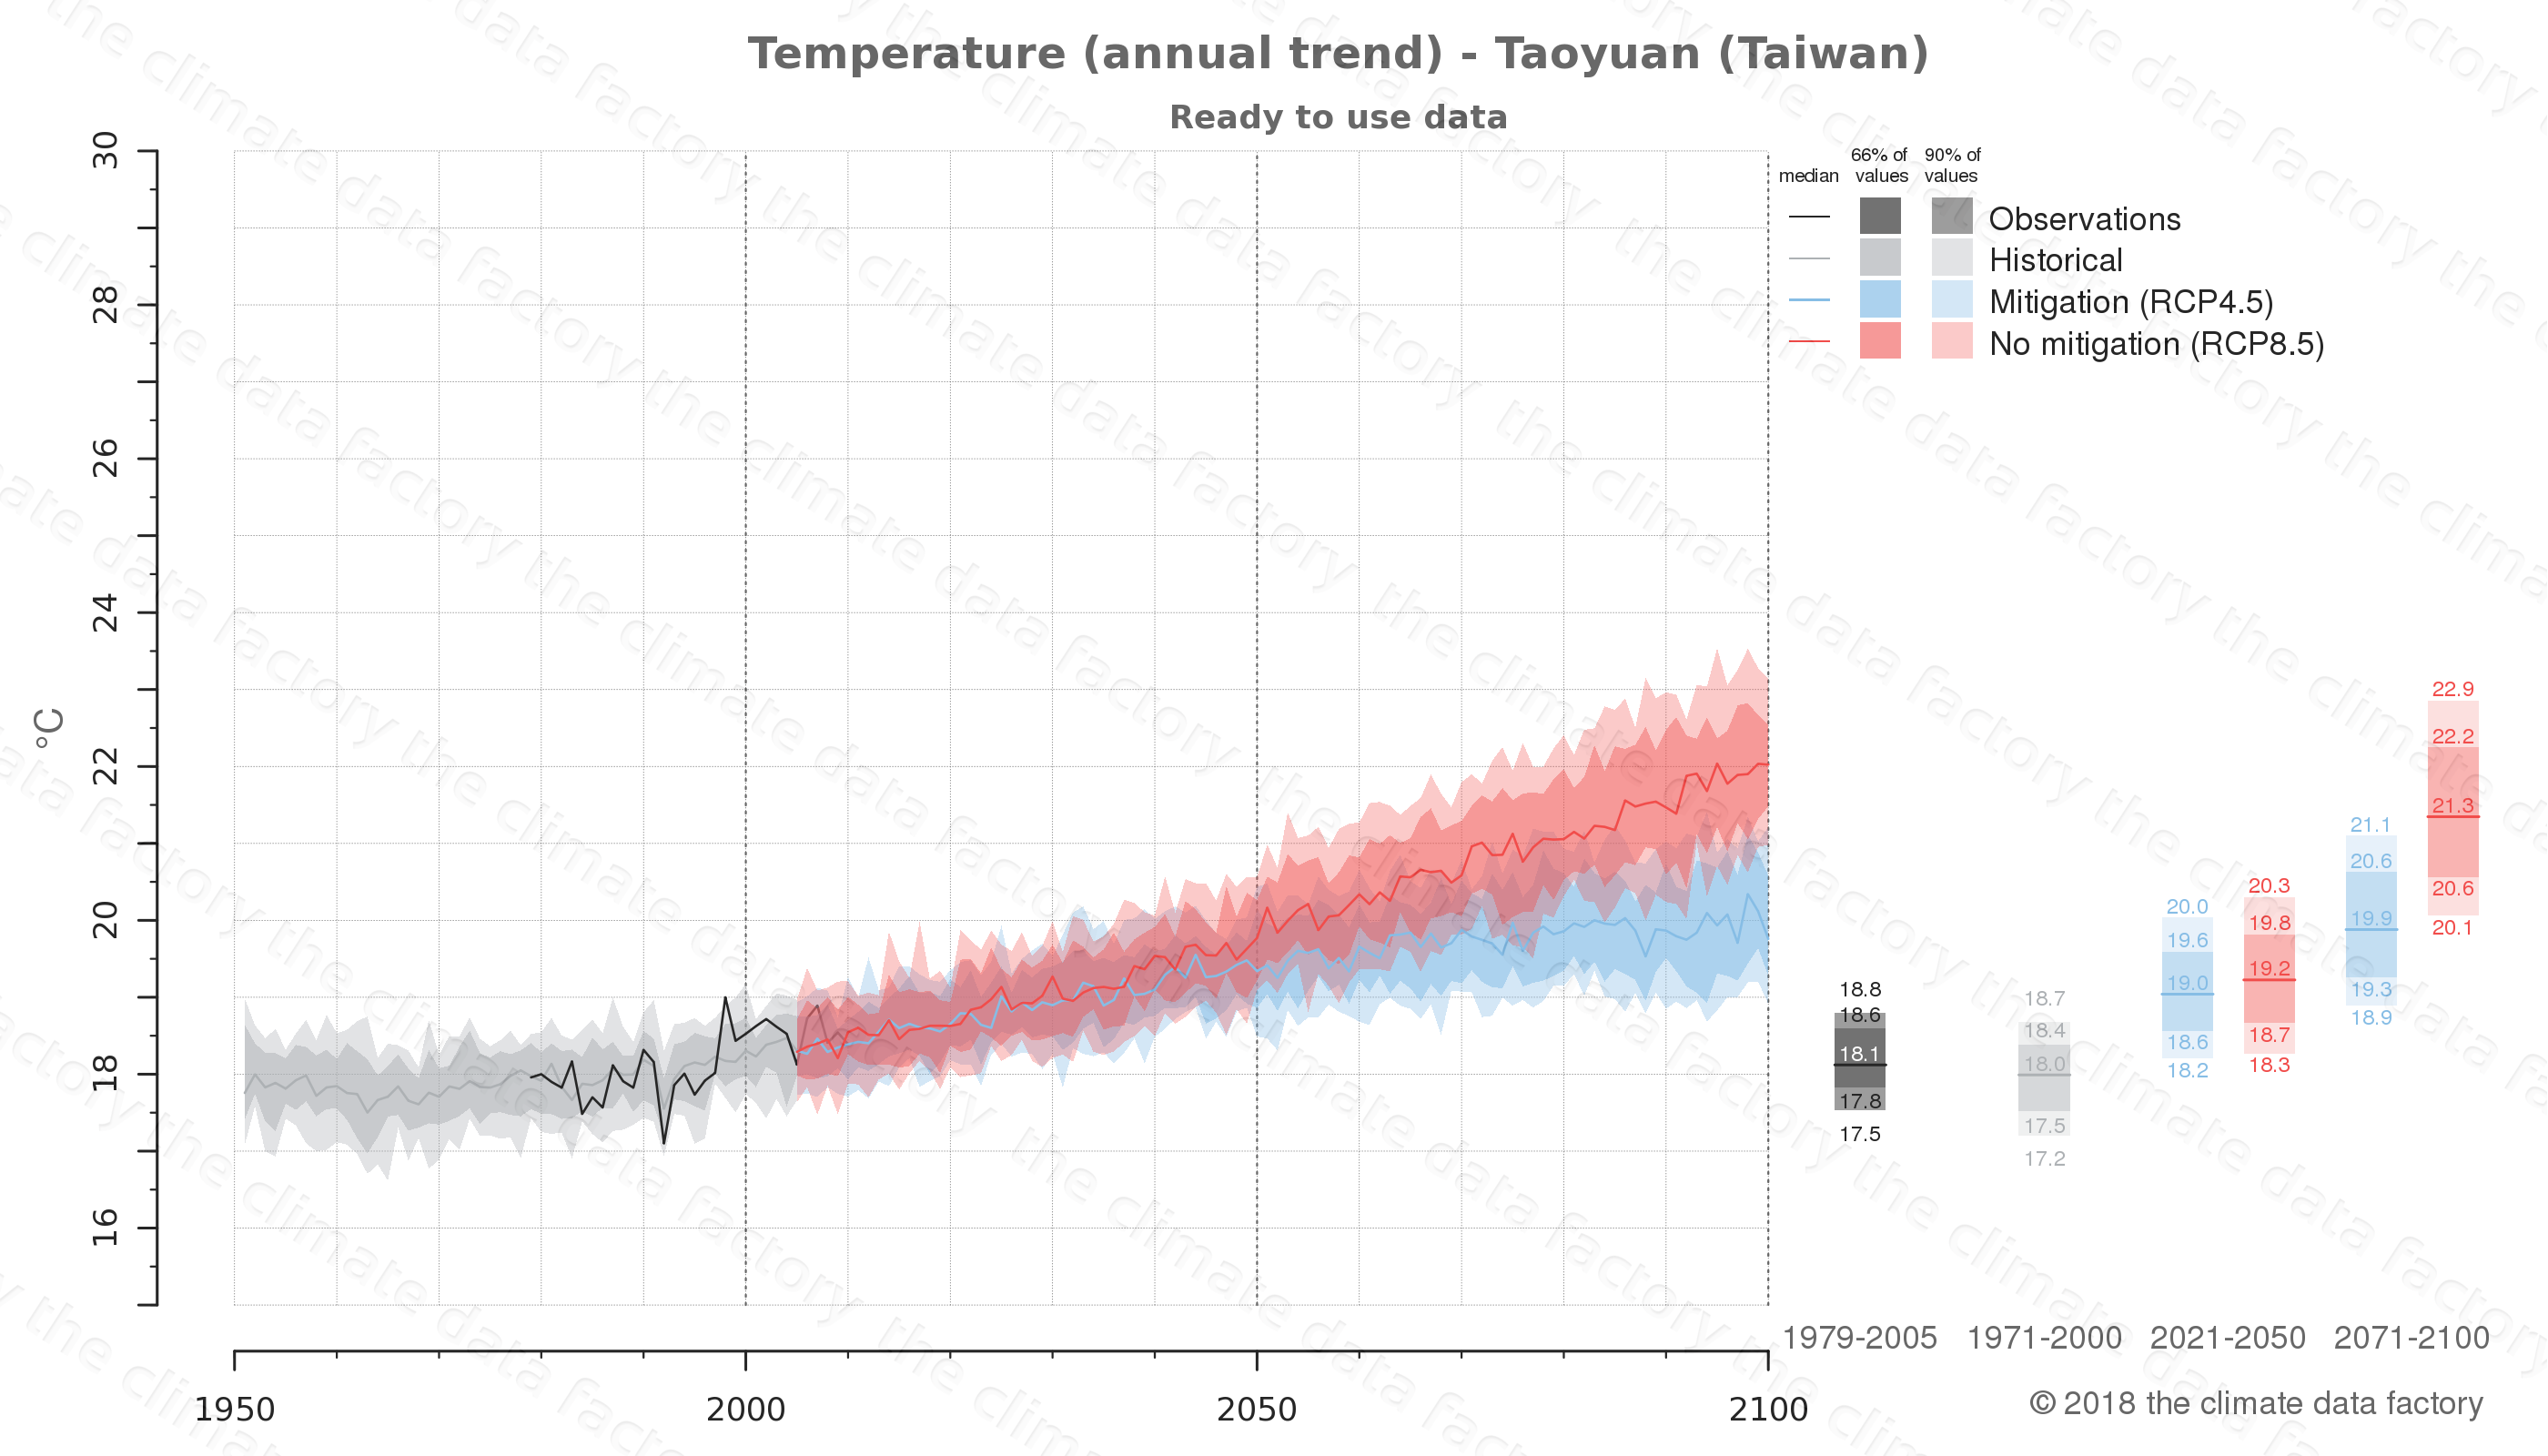 climate change data policy adaptation climate graph city data temperature taoyuan taiwan